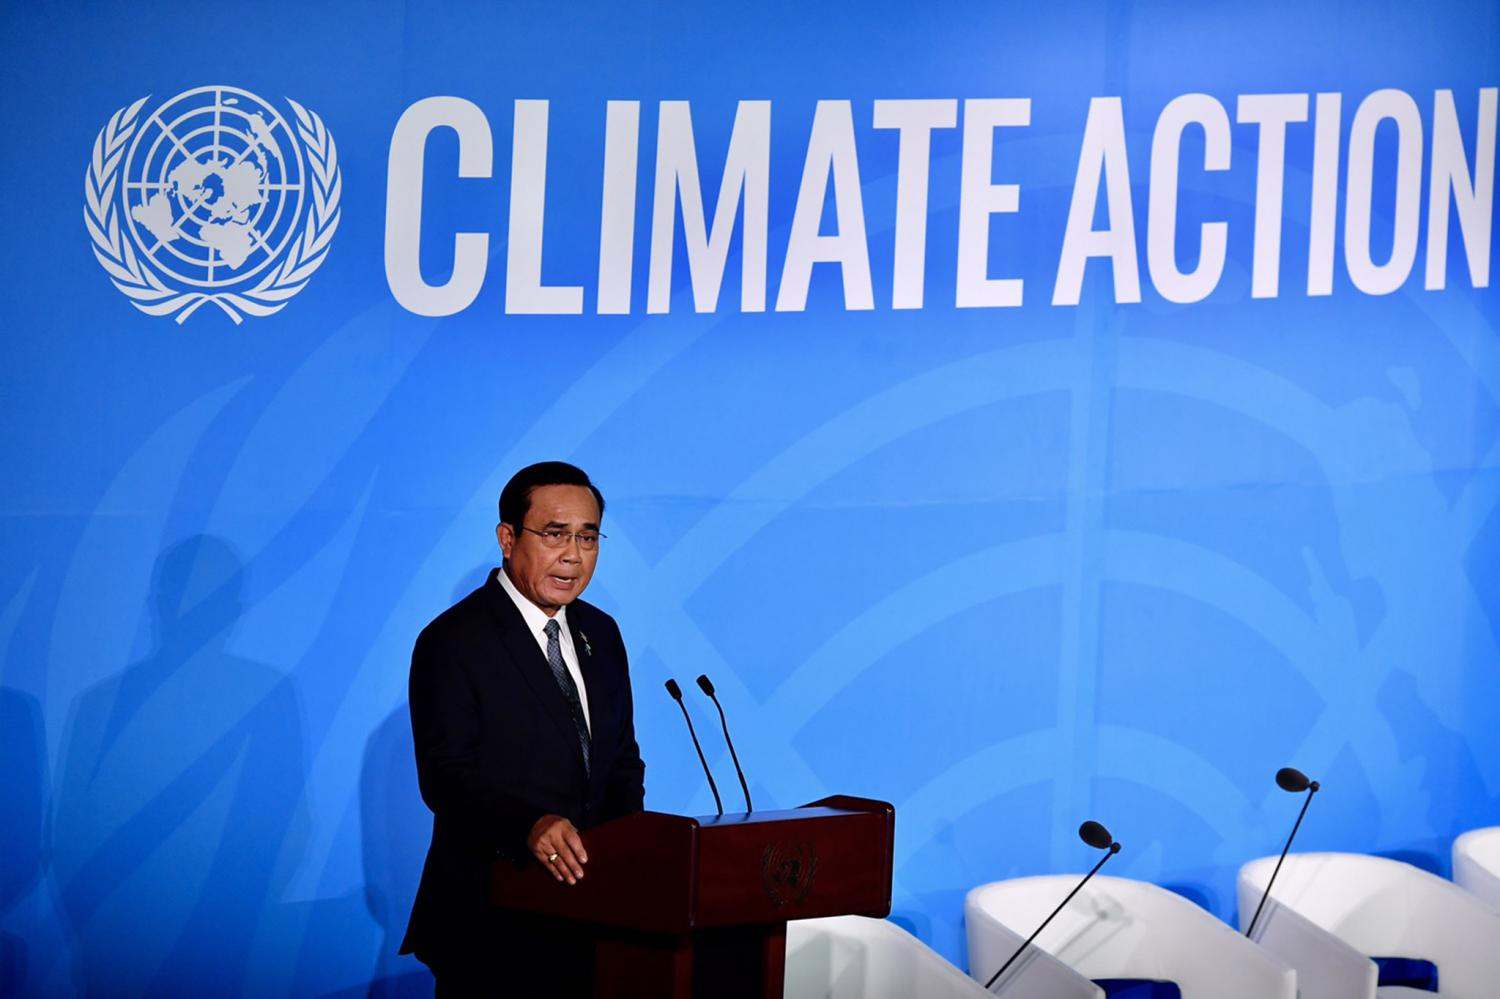 Prime Minister Prayut Chan-o-cha represents Asean members while addressing the United Nations Climate Action Summit 2019 in New York. (Government House photo)